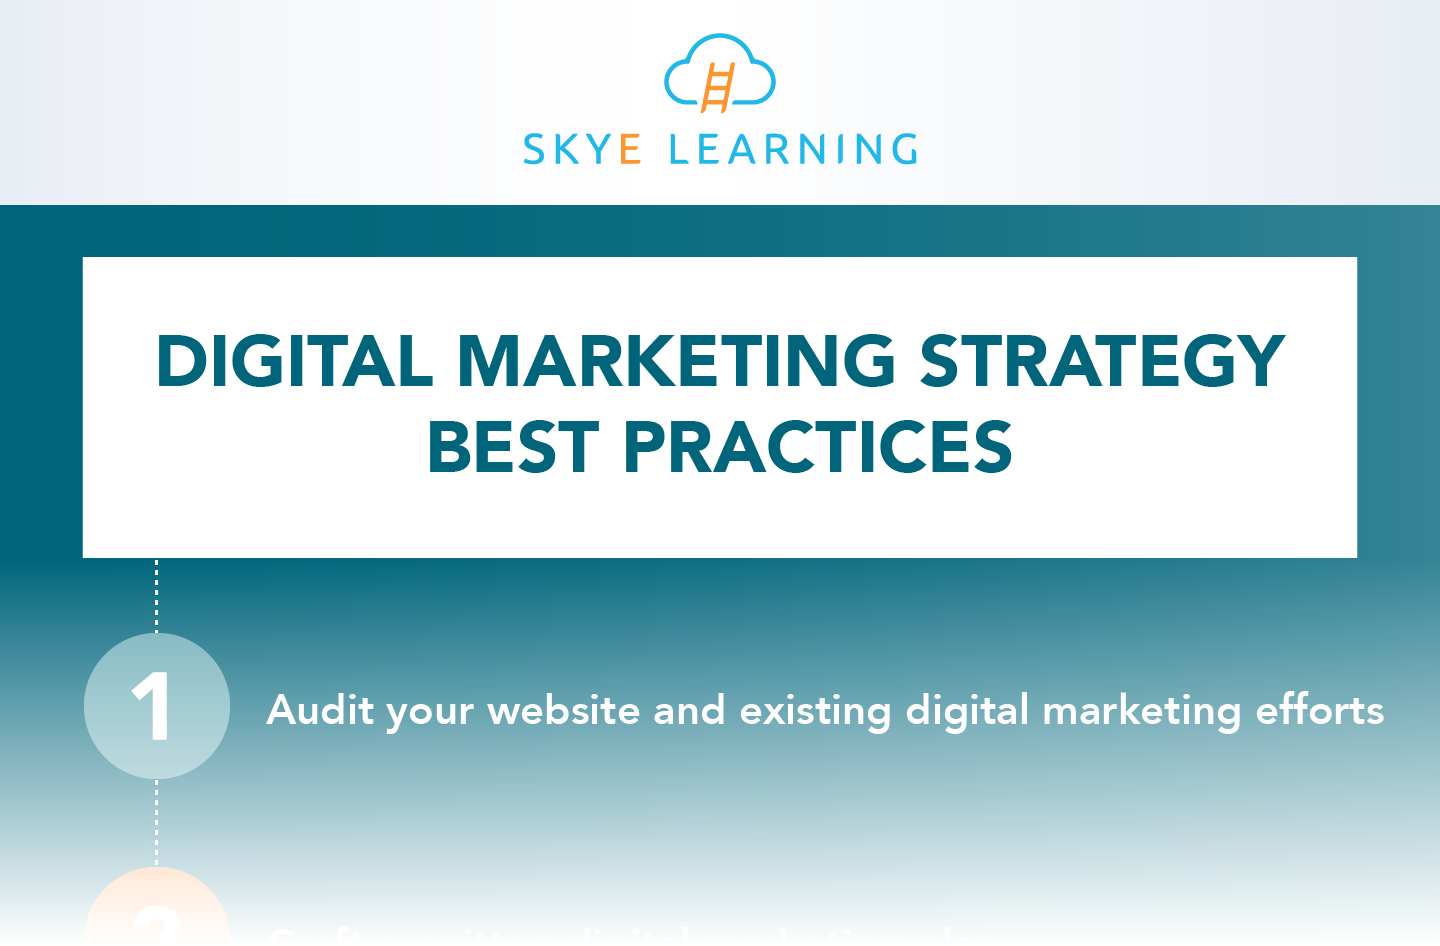 digital-marketing-strategy-best-practices-SL-IG-TRUNCATED